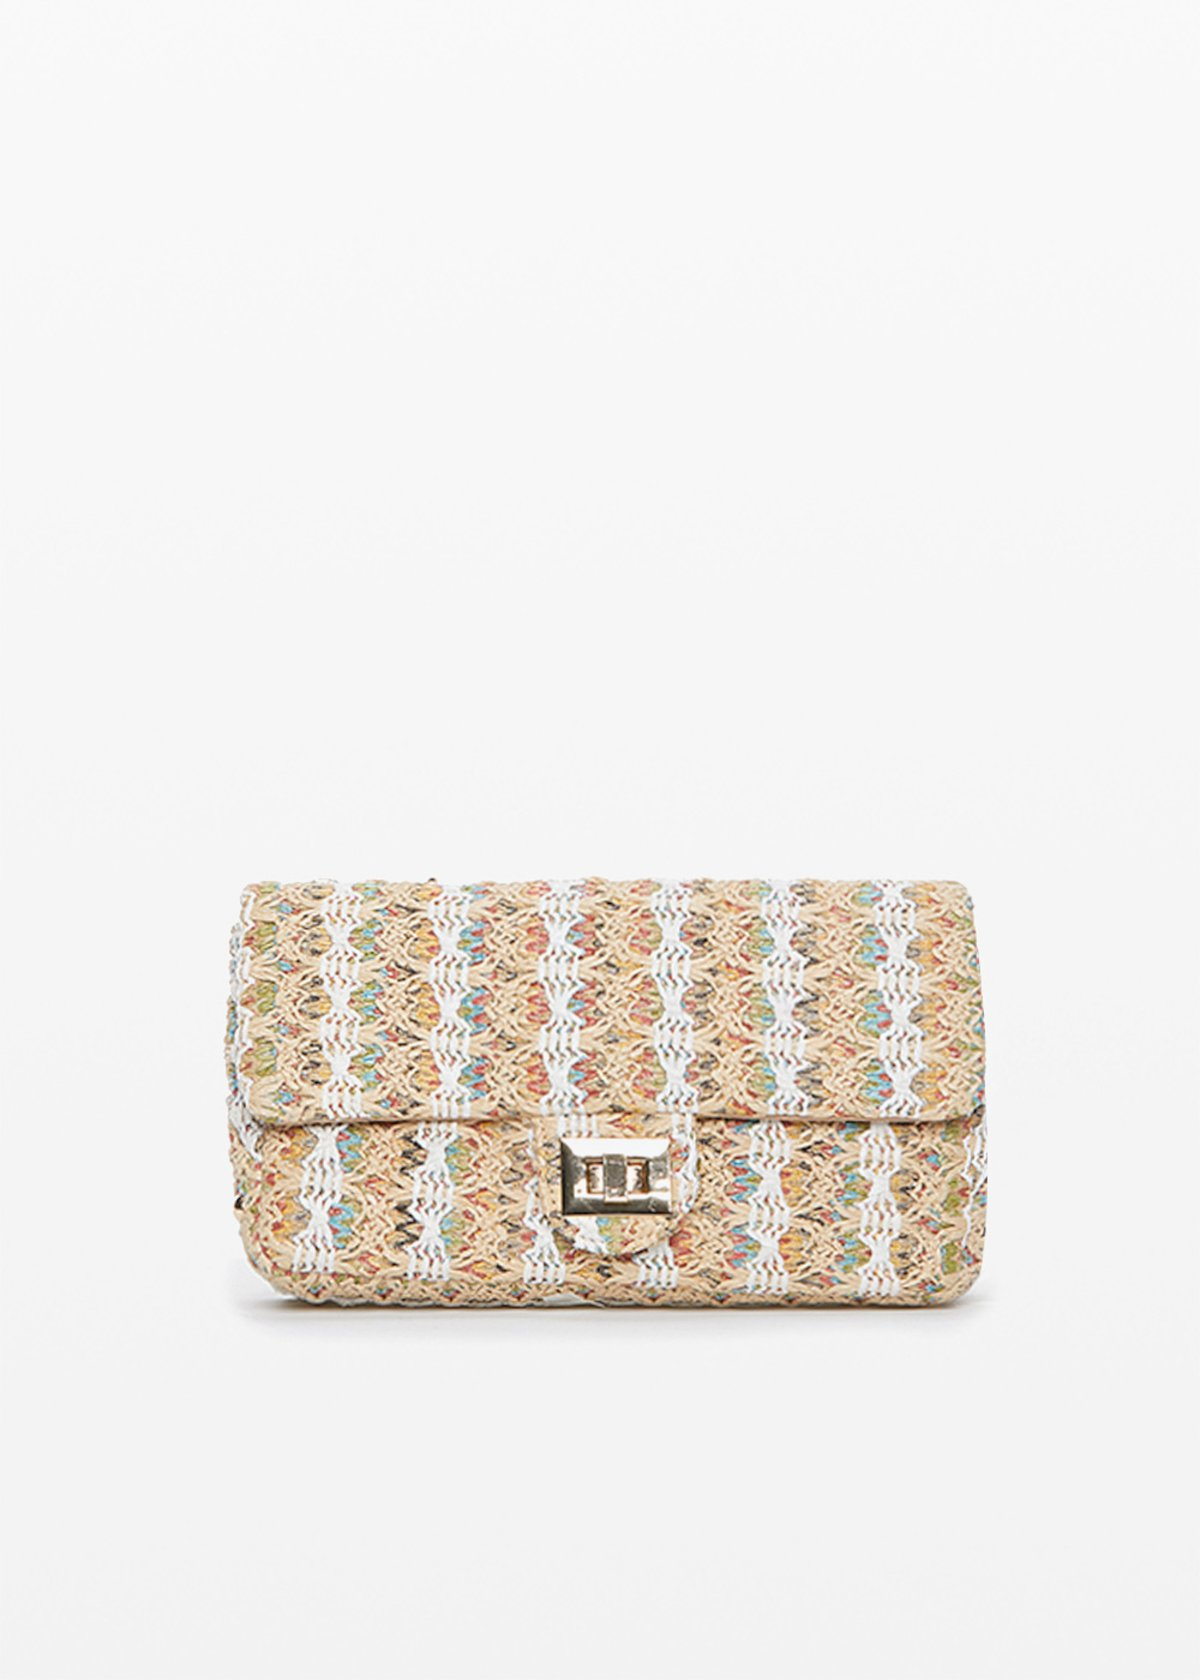 Clutch bag Boss multicolor in tessuto intrecciato - Nomad    / Ananas Fantasia - Donna - Immagine categoria